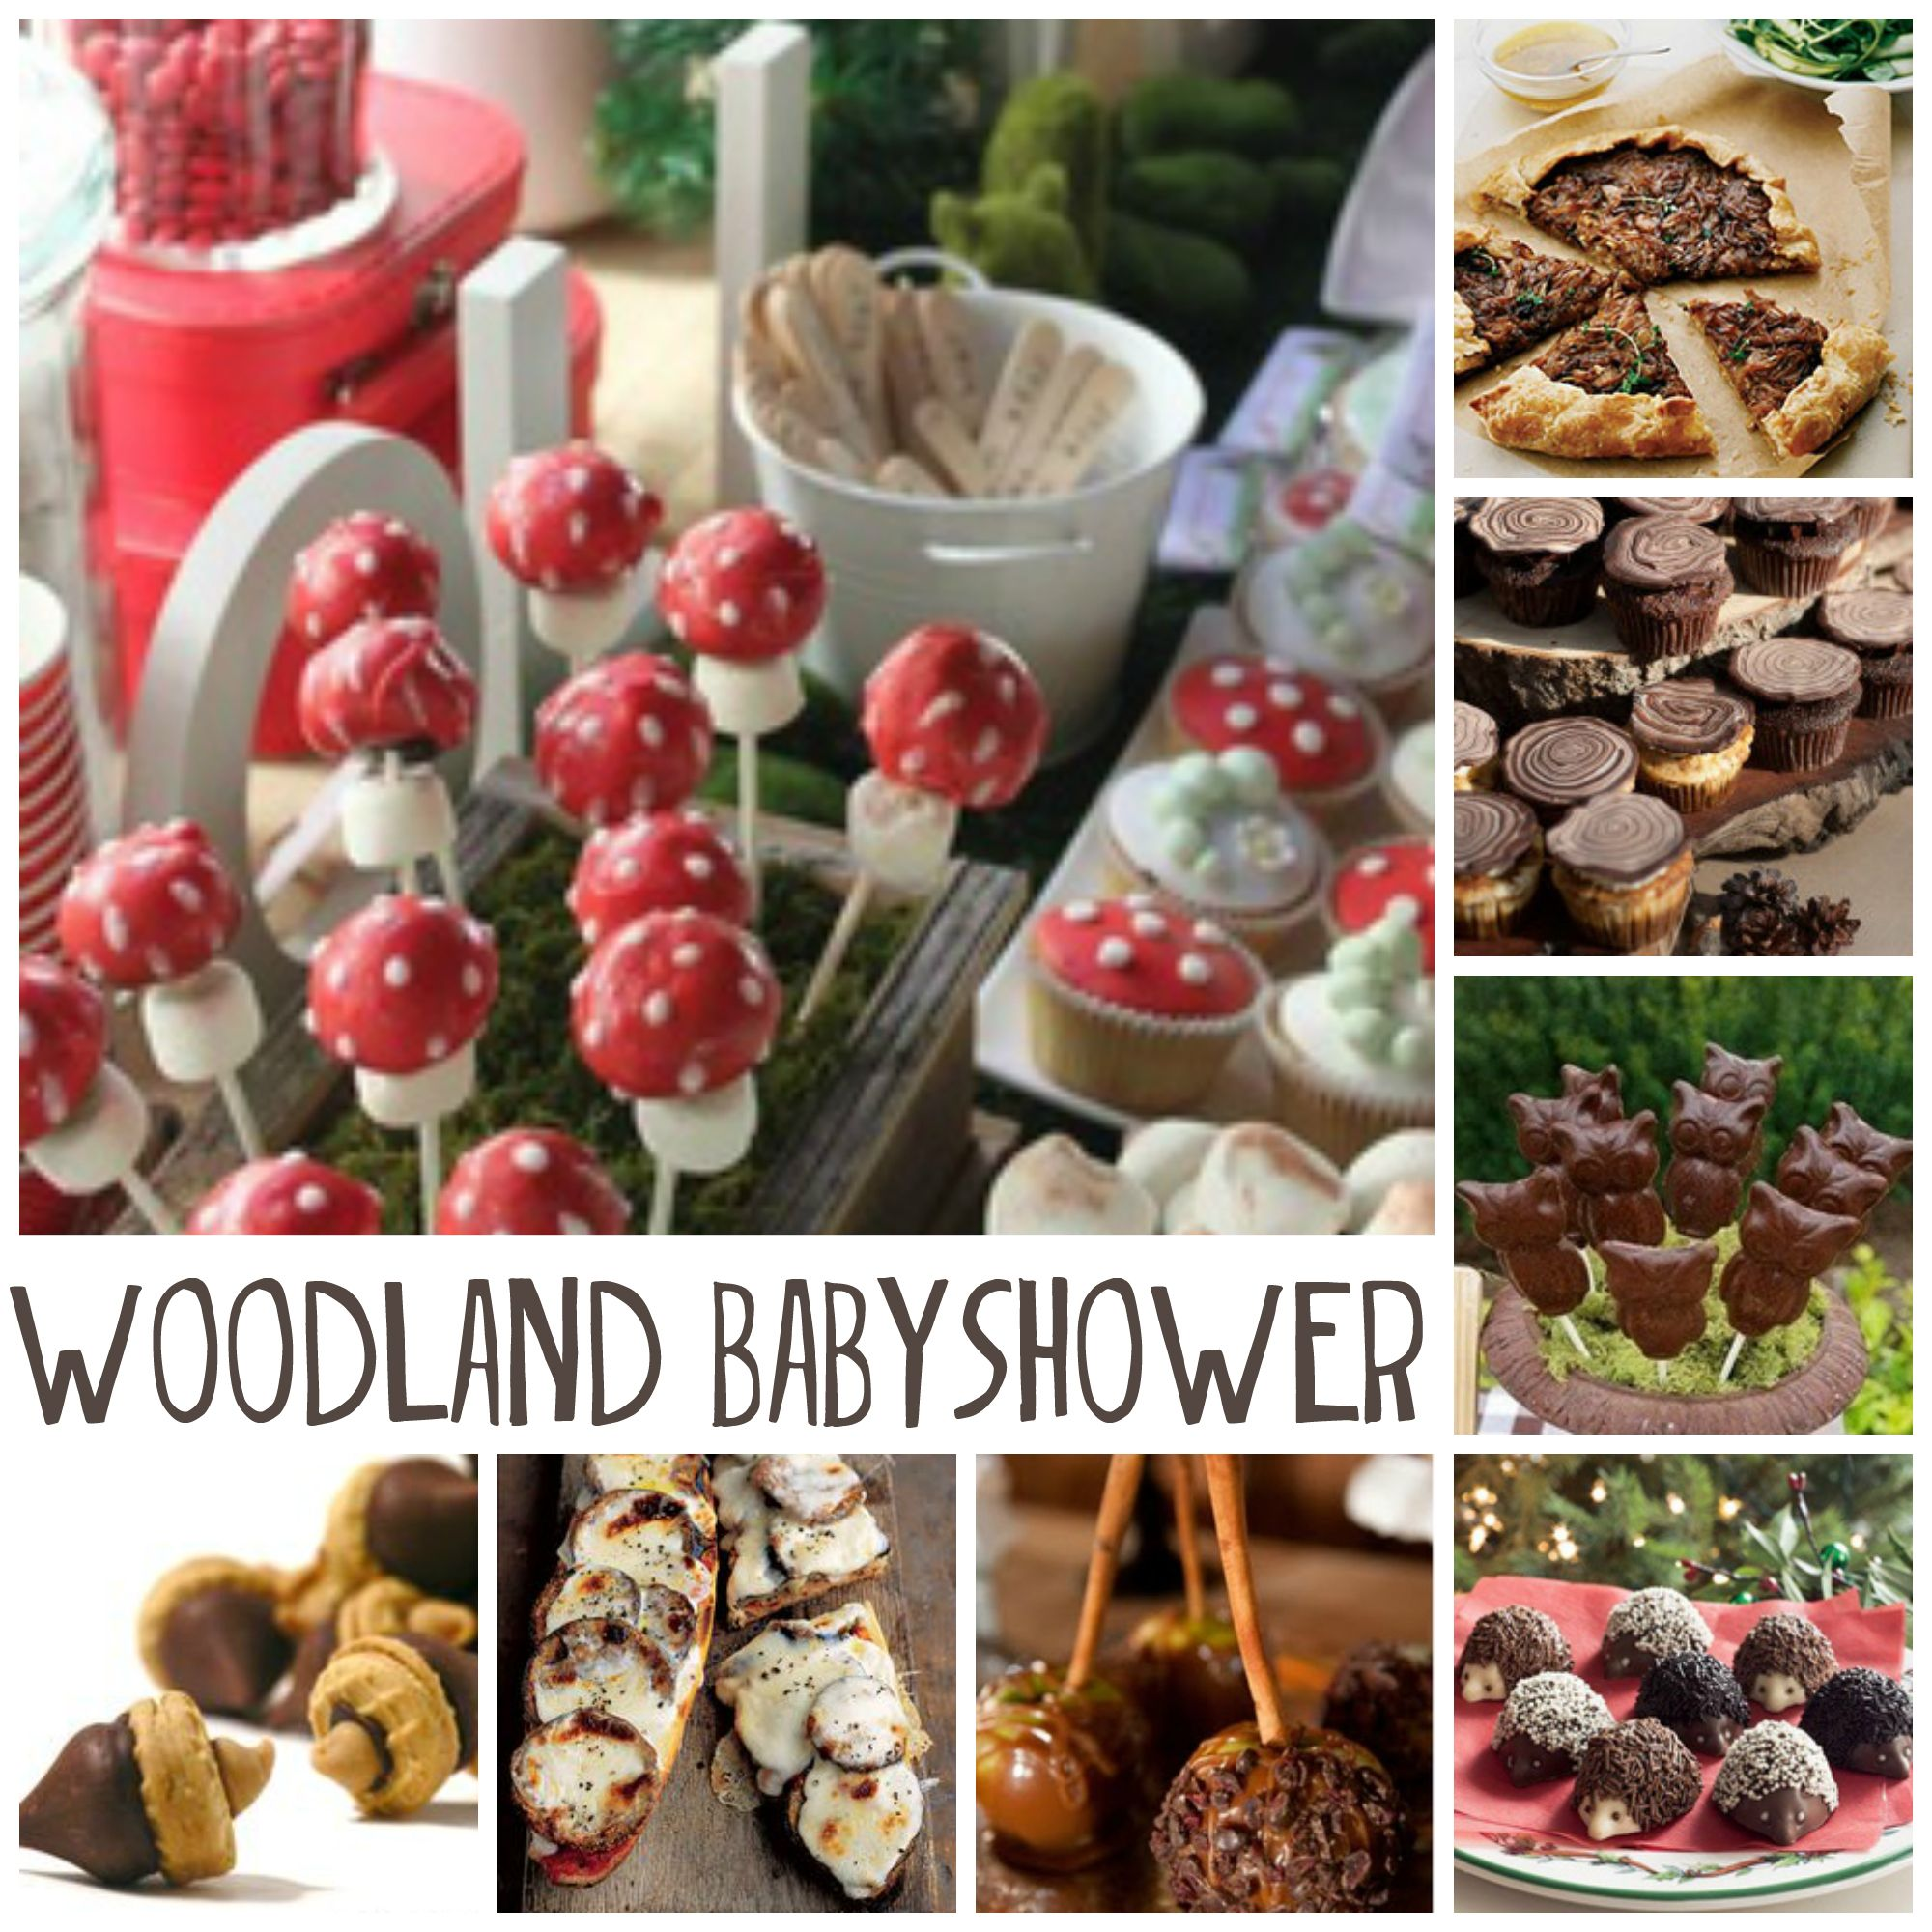 Woodland Babyshower: My PINspiration   Homegrown In The Valley